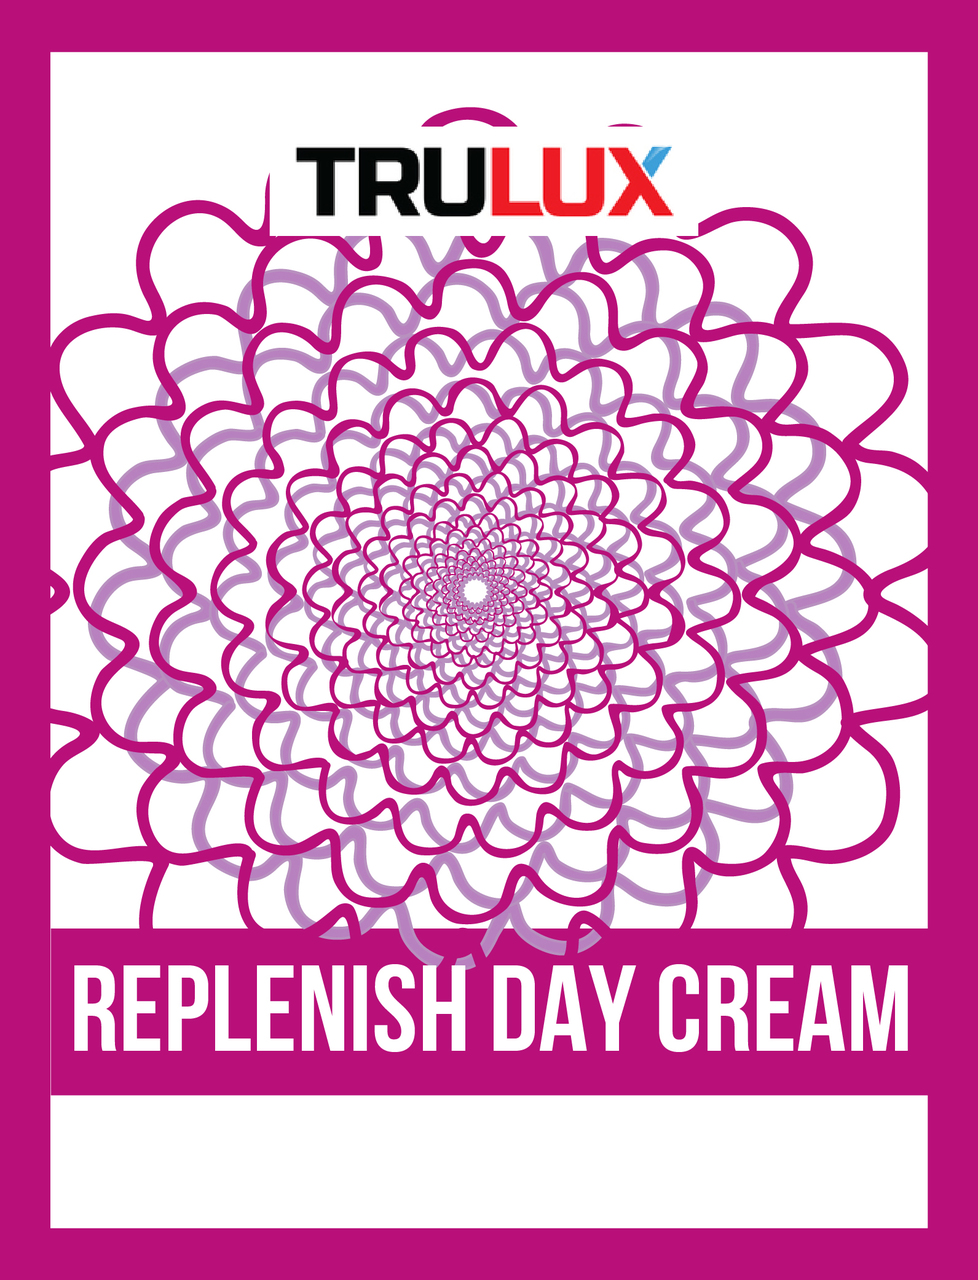 REPLENISH DAY CREAM